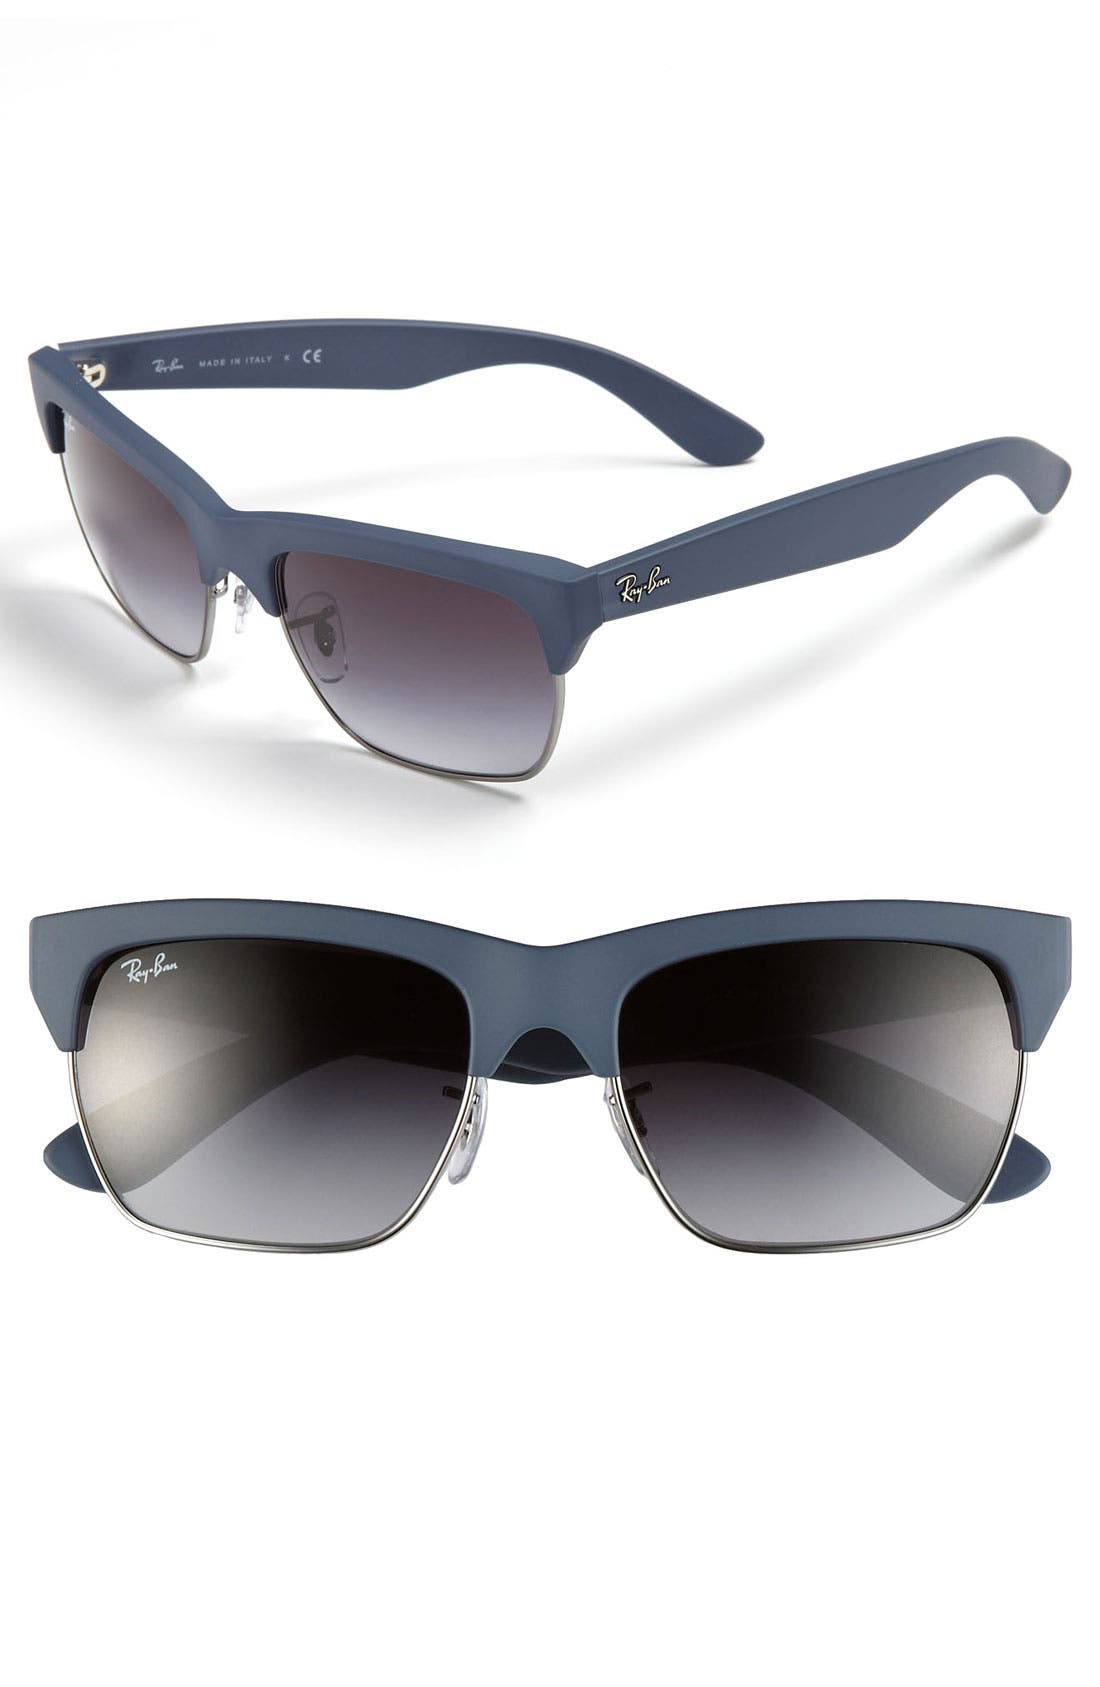 Main Image - Ray-Ban 'Youngster' 57mm Sunglasses